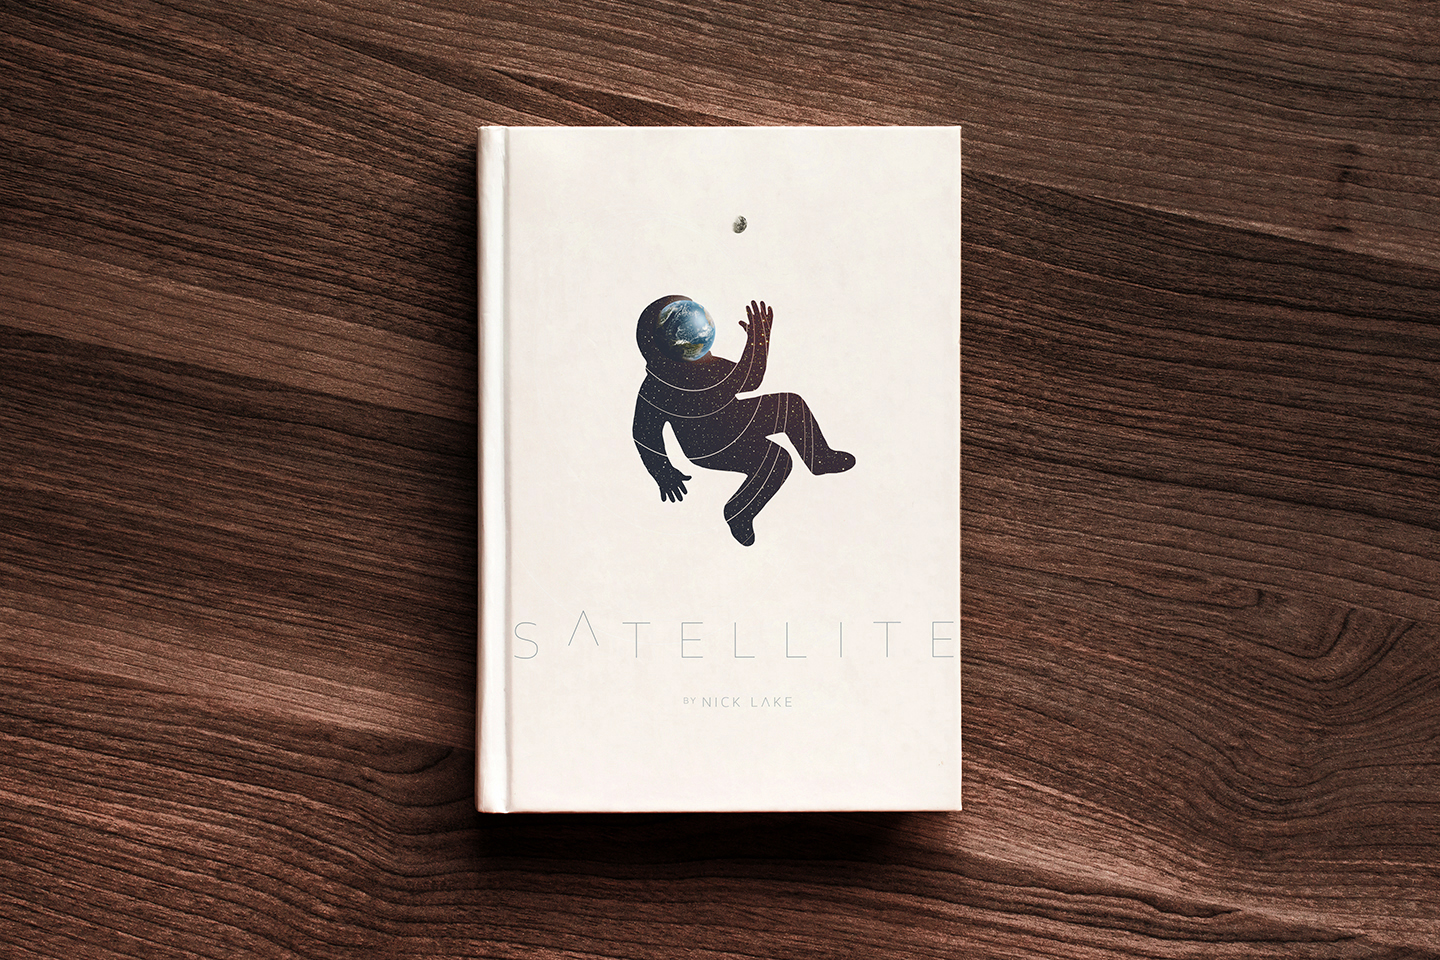 SatelliteBookCover_JH_COOMP.jpg